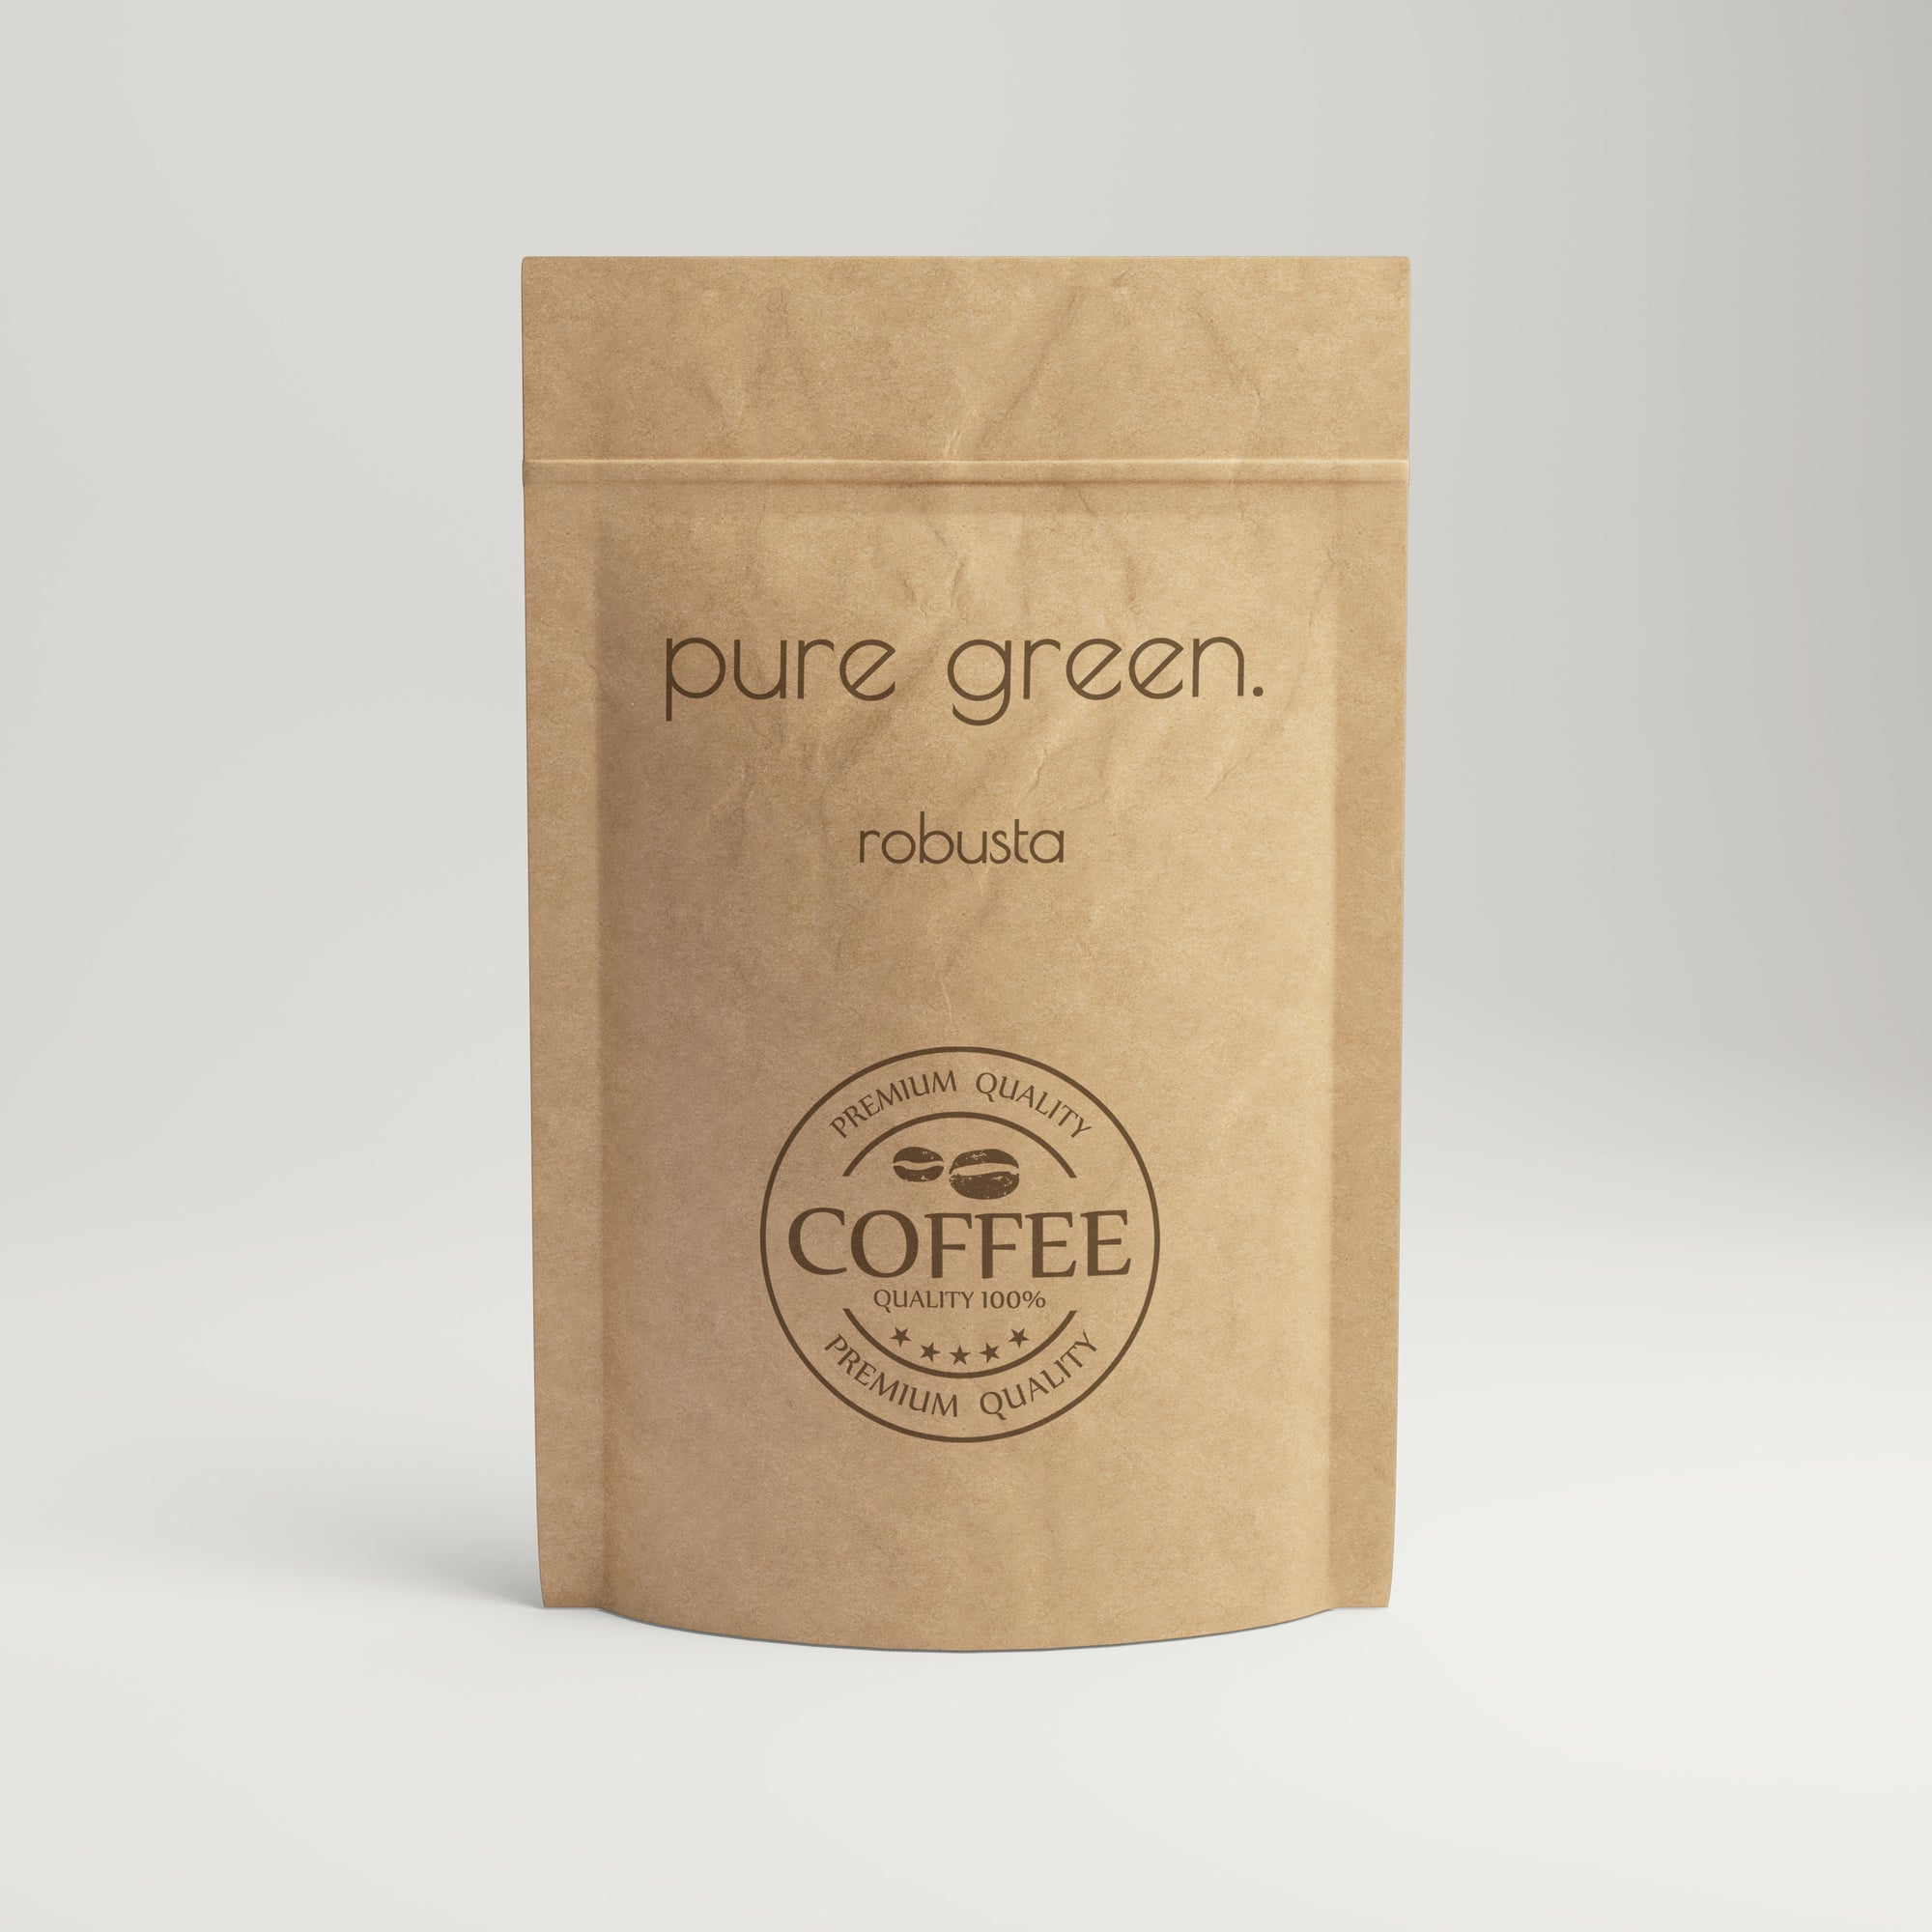 Pure green Robusta